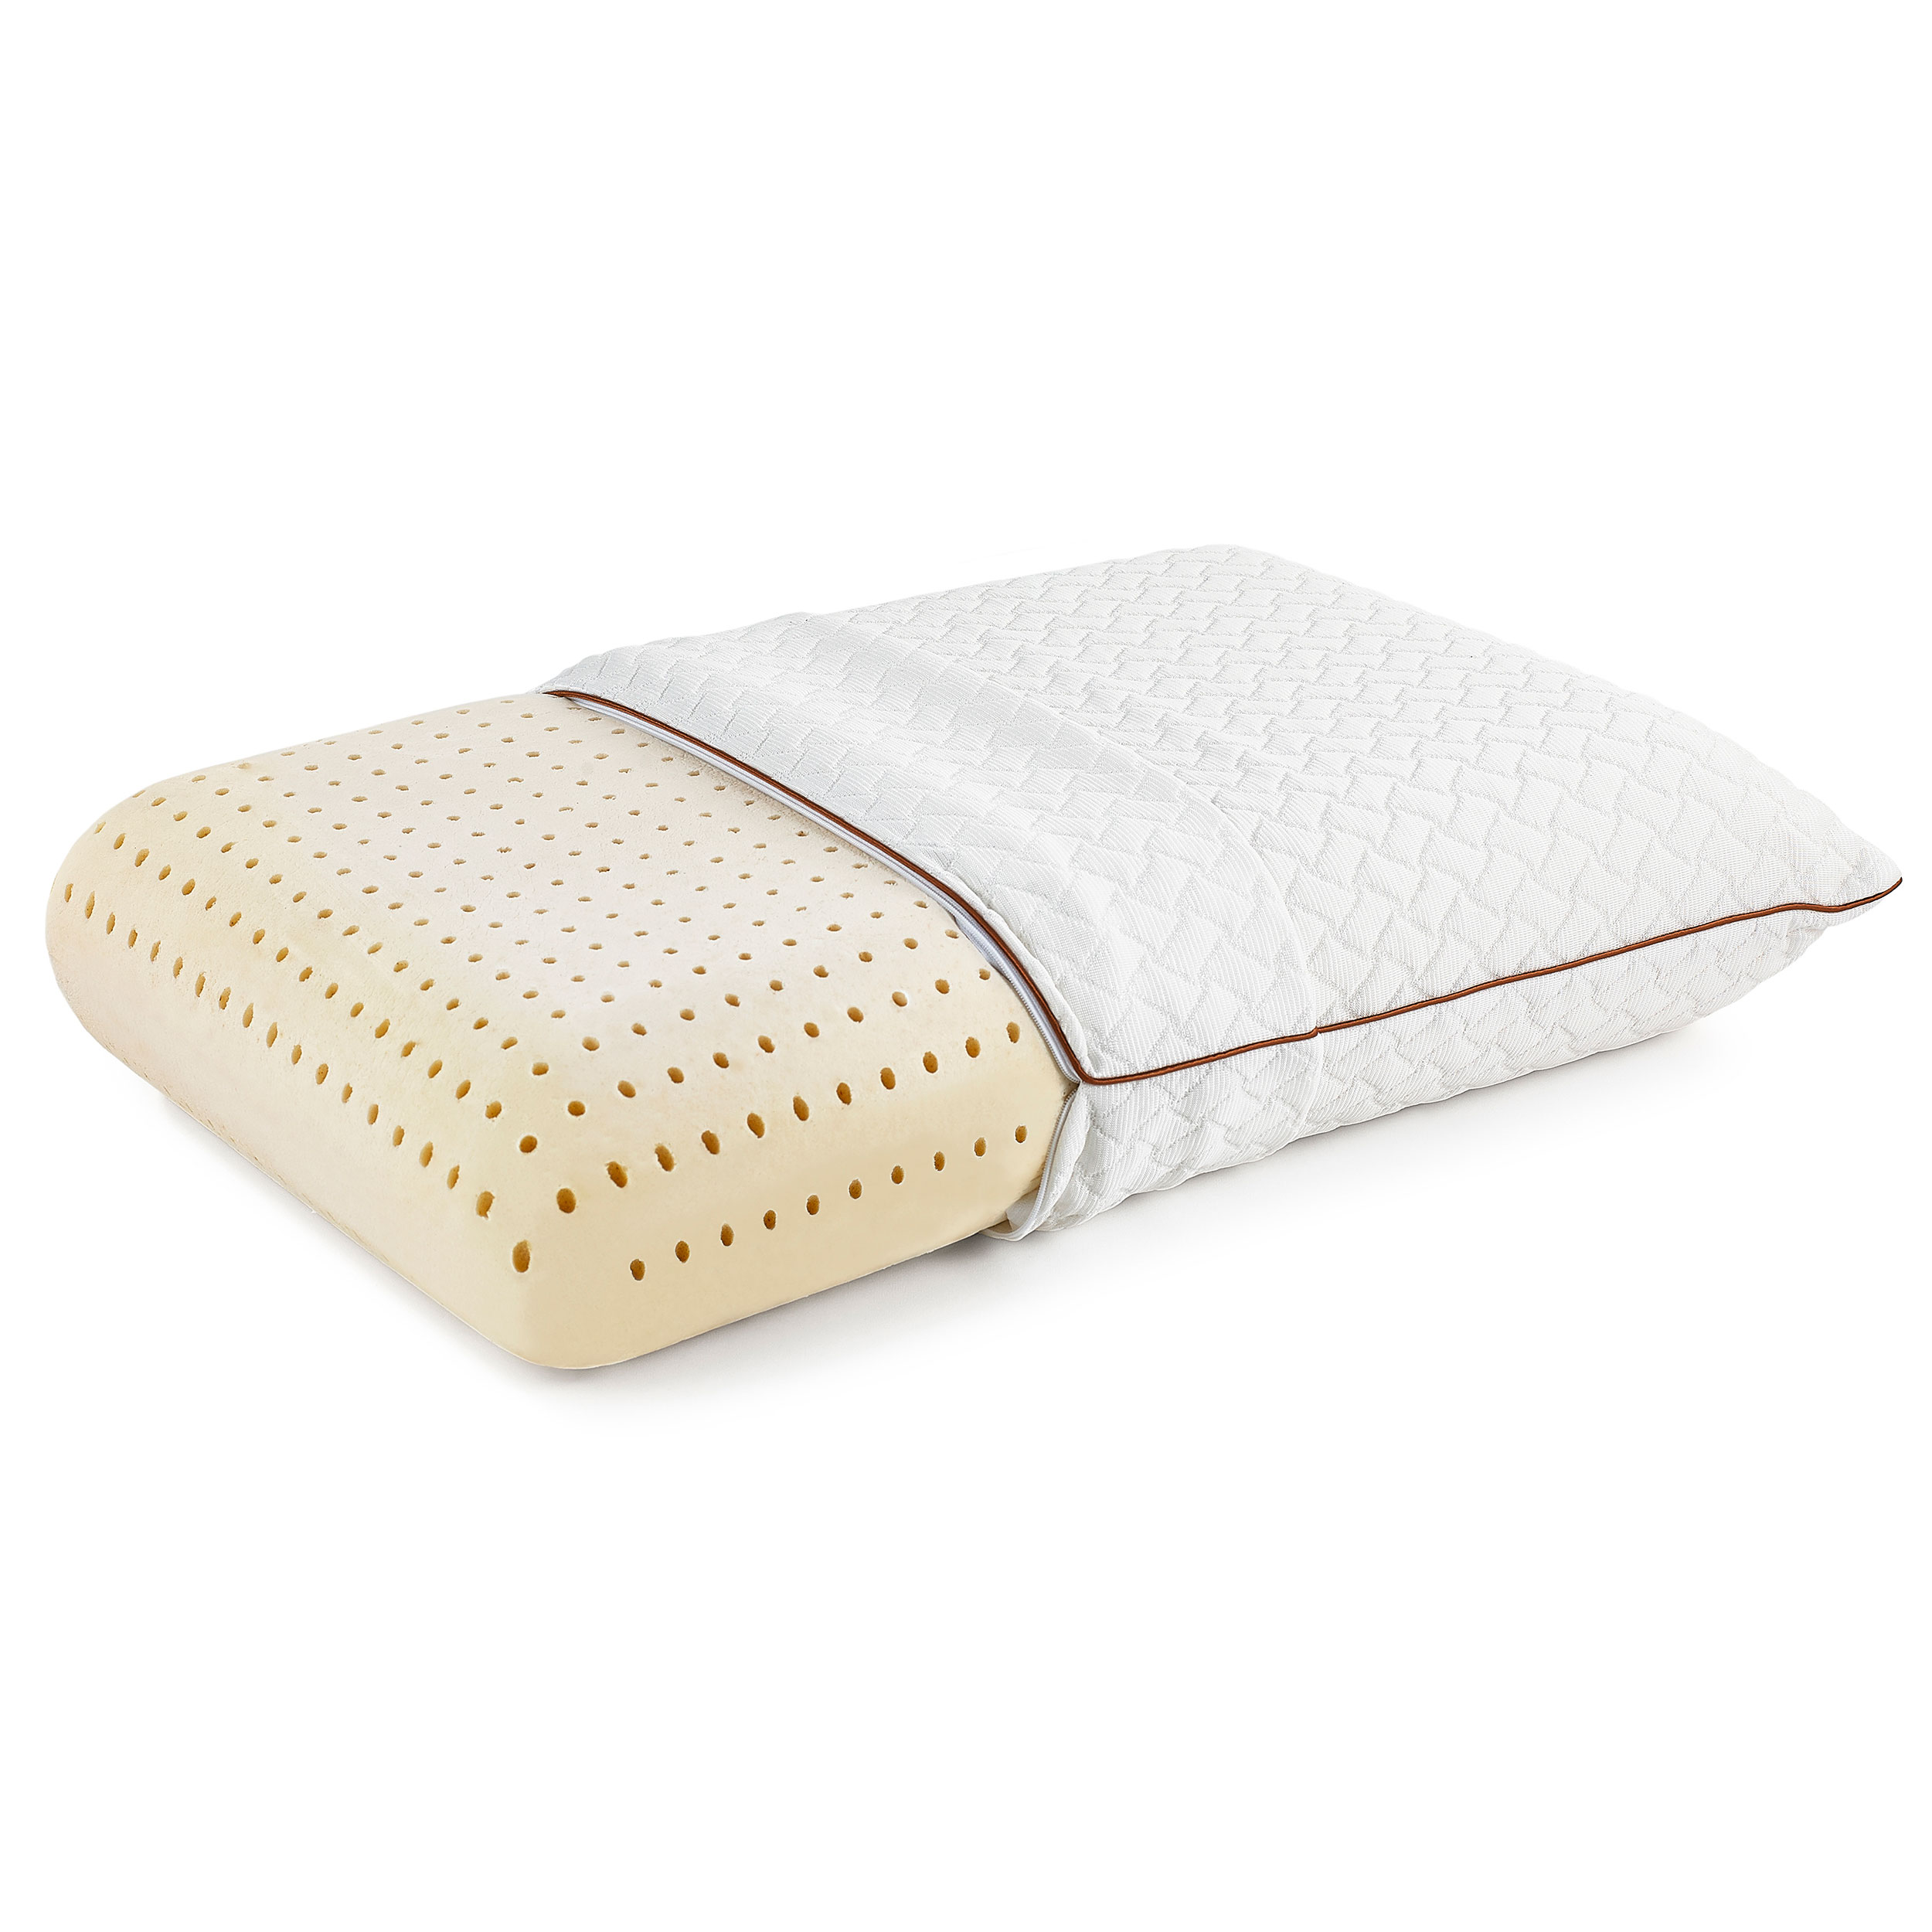 Gel Infused Memory Foam Pillow Great Sleep Copper Gel Coolflow Memory Foam Pillow Great Sleep